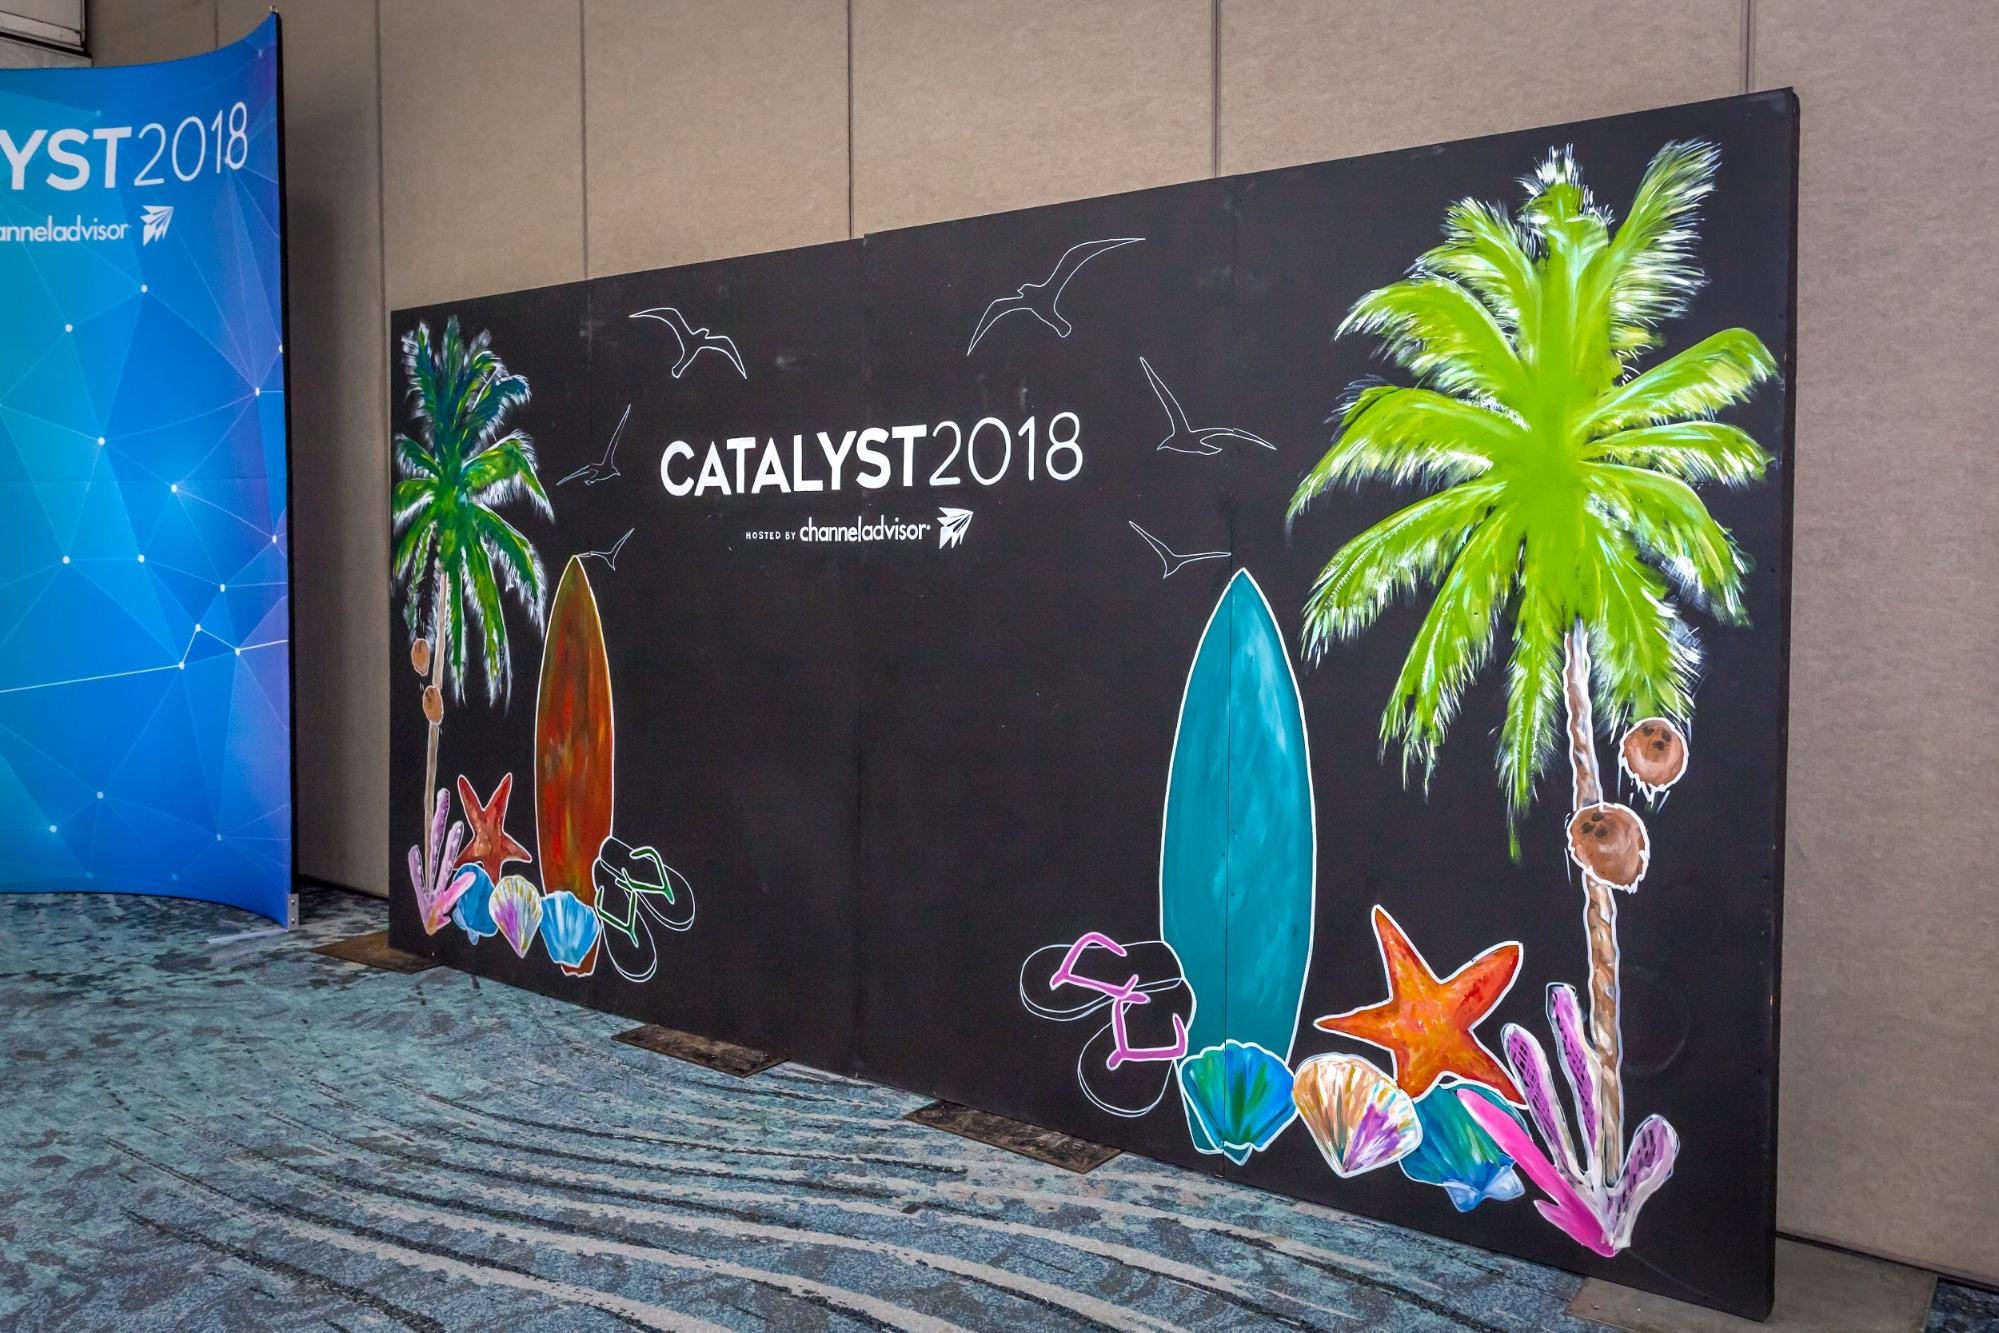 Vacation giveaway (branded backdrop)